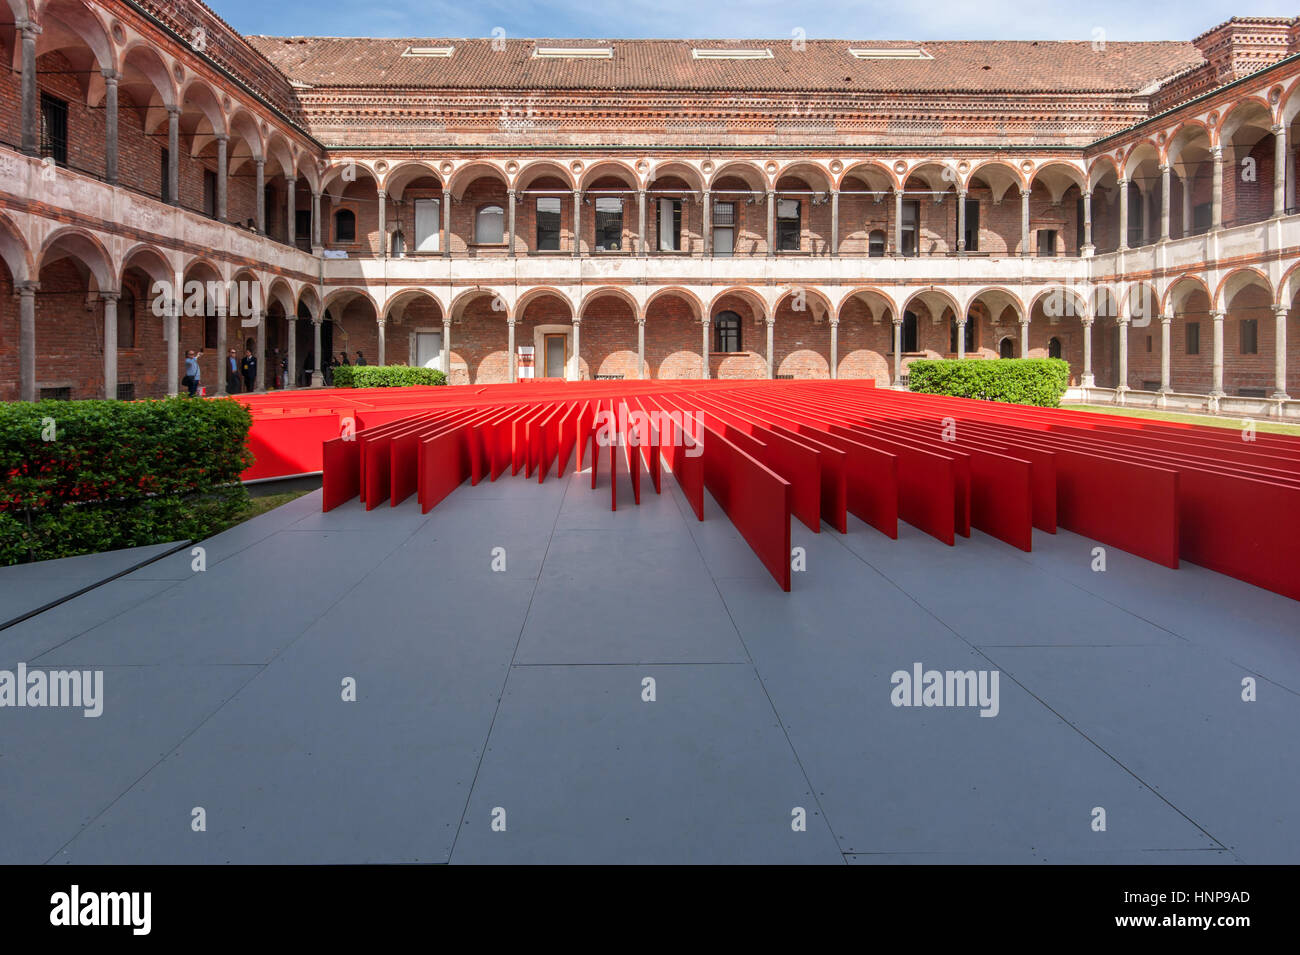 View of the installation 'Red Flowers, designed by Daniel Libeskind for Oikos in the courtyard of the University - Stock Image